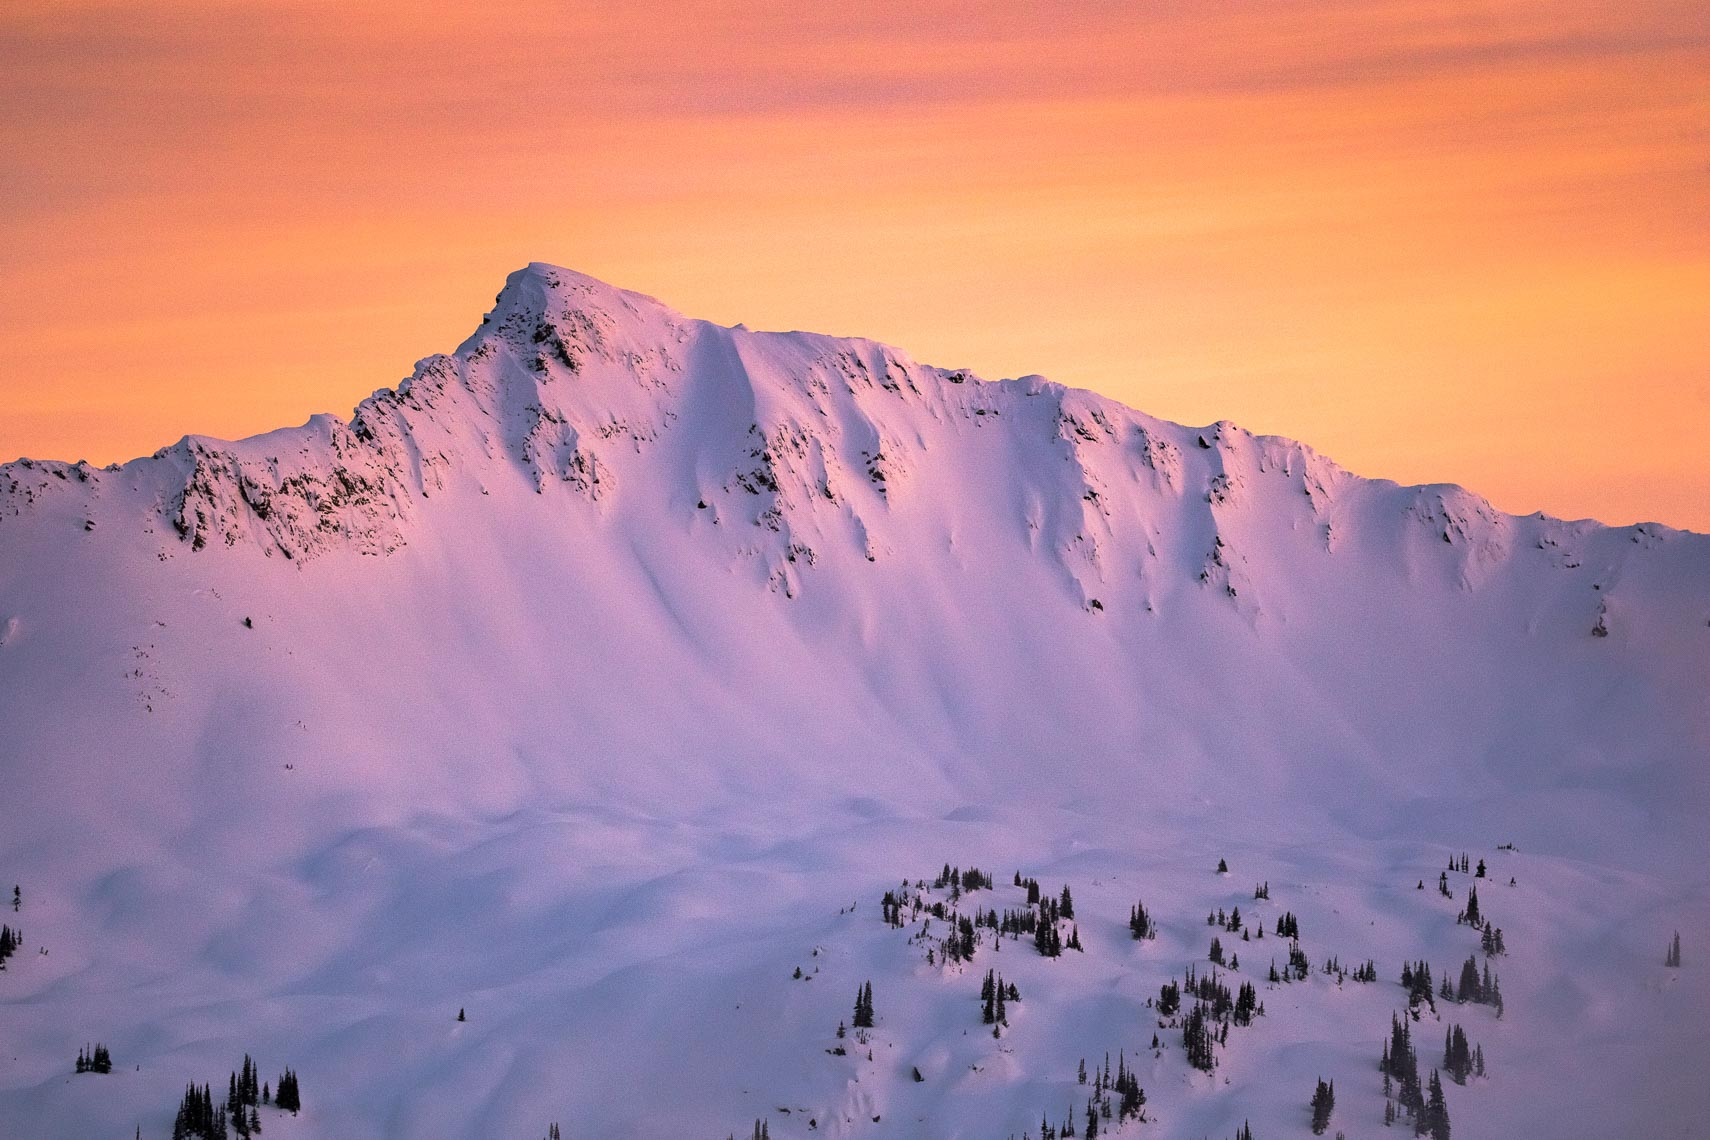 Snowy purple mountain at sunset in British Columbia, Canada